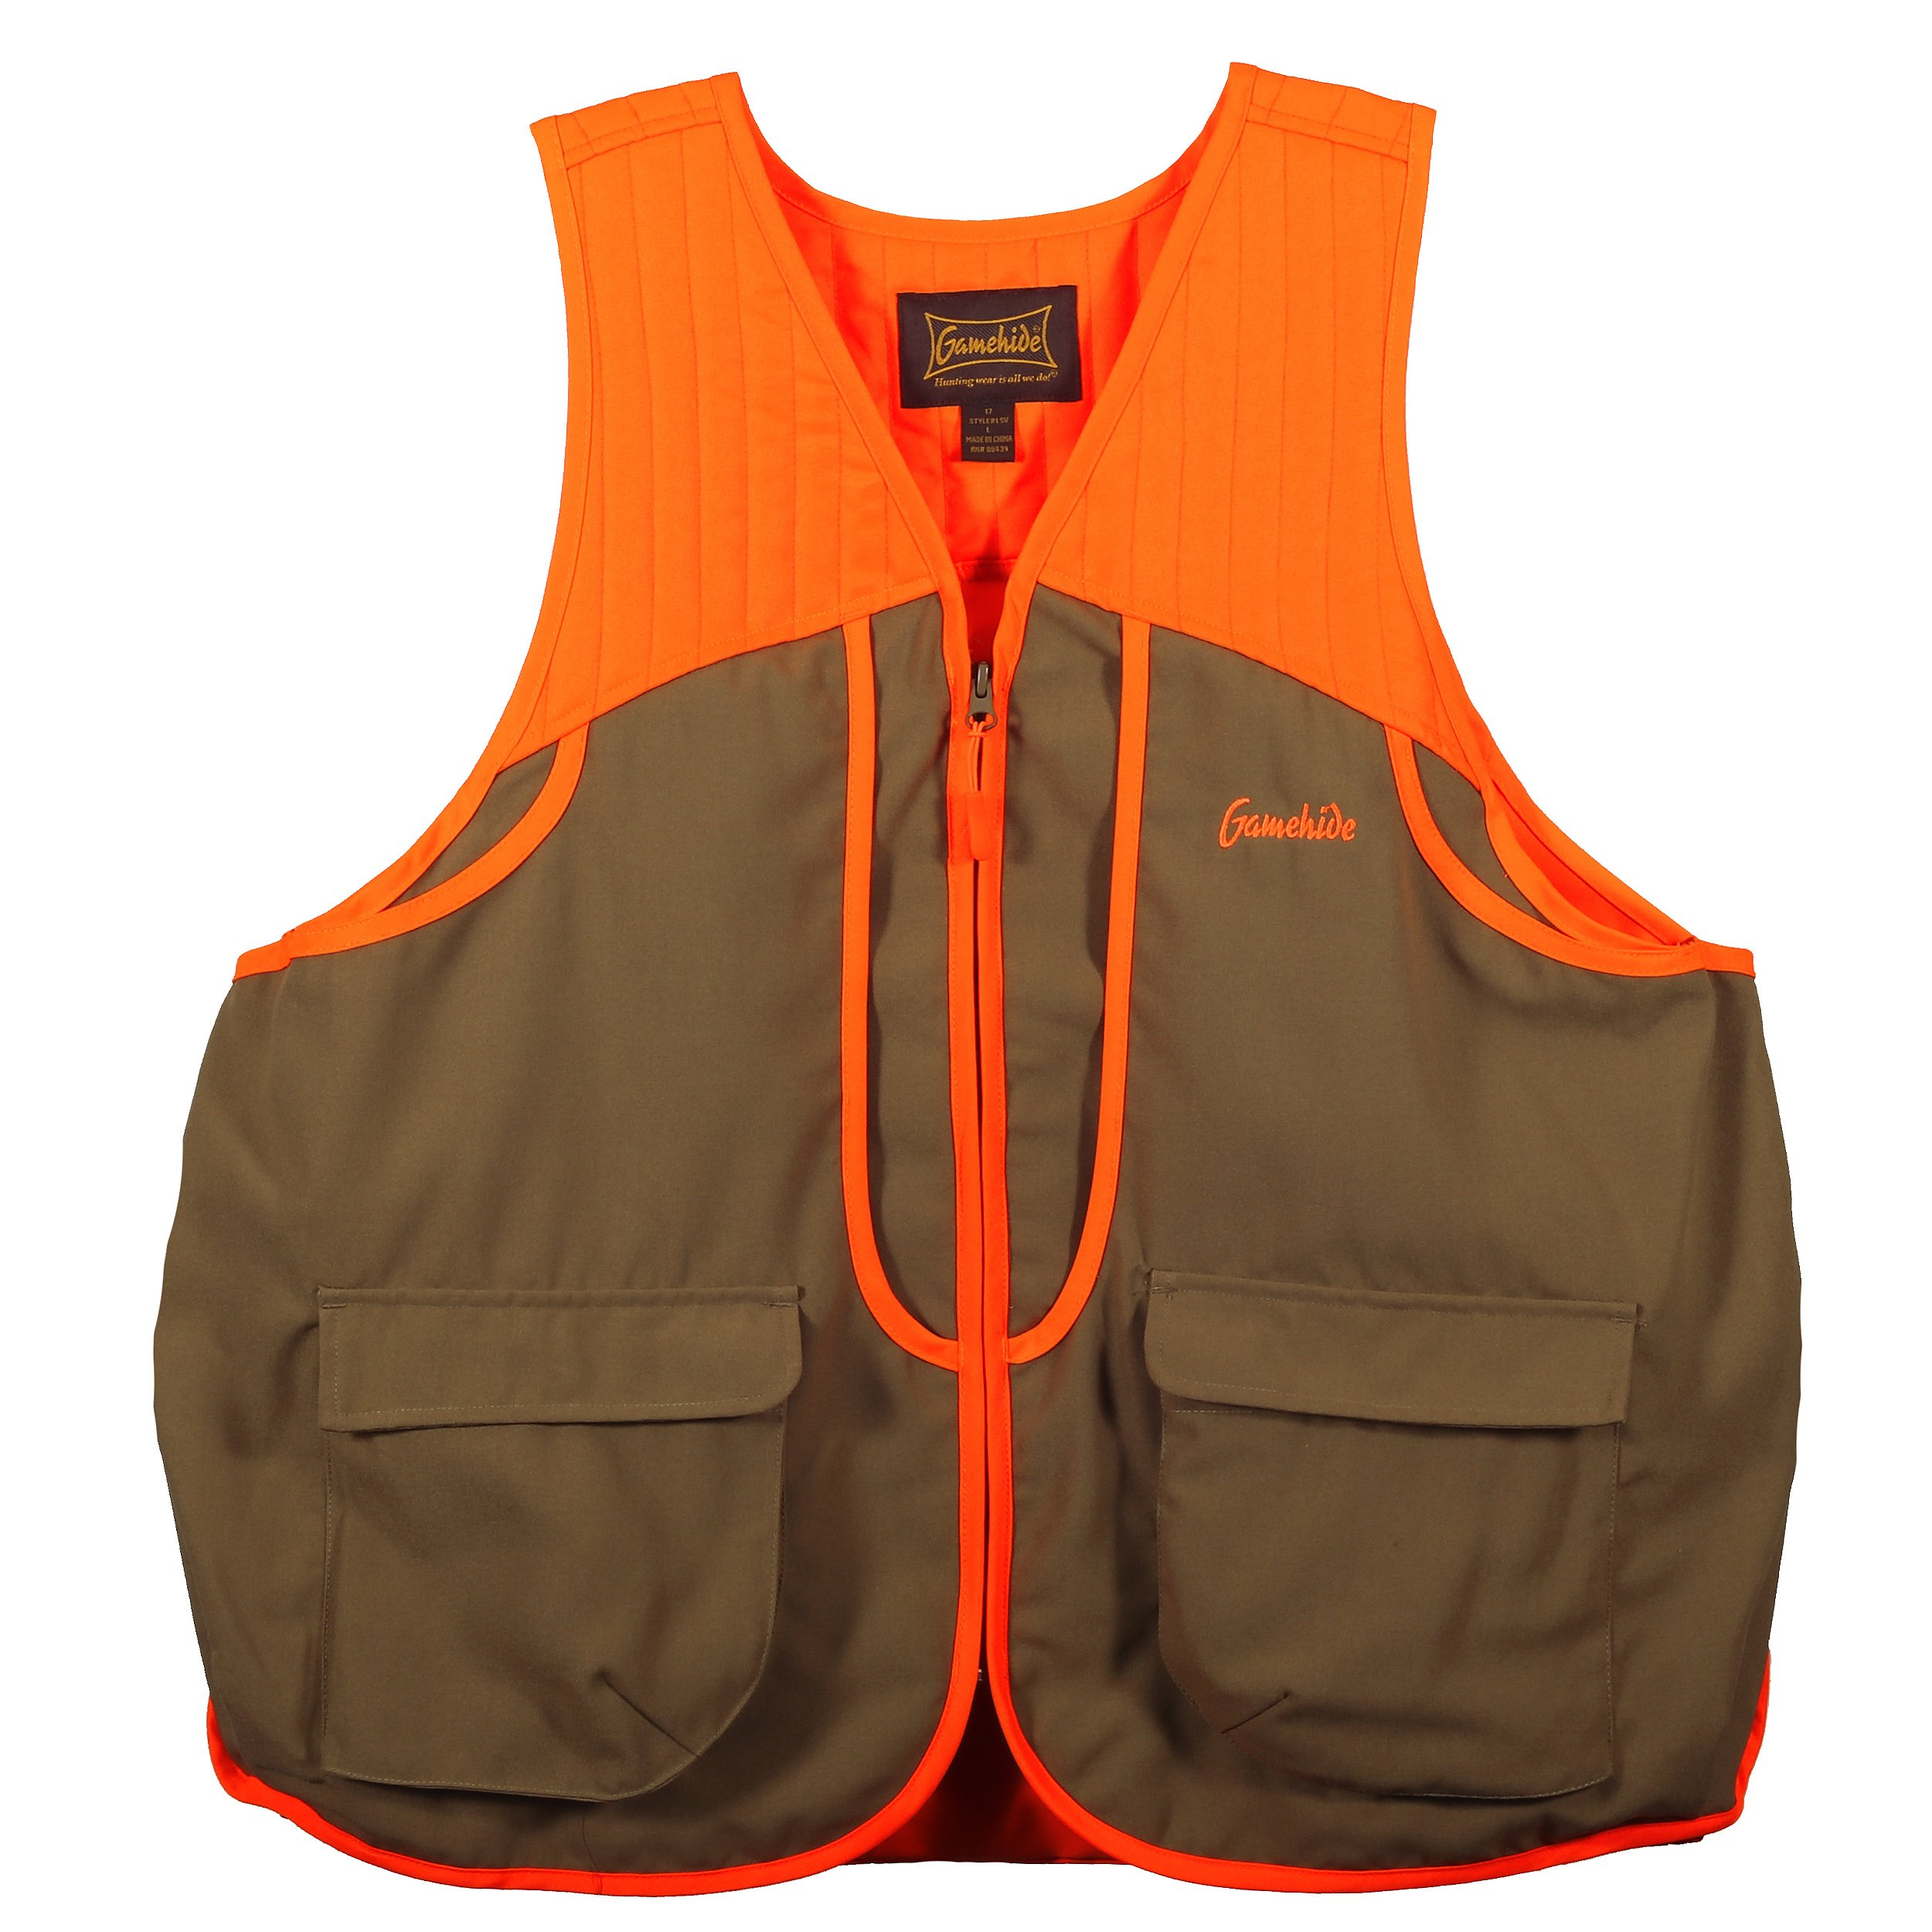 Gamehide Ladies Women's Upland Field Hunting Vest (Tan/Orange, Medium) by Gamehide